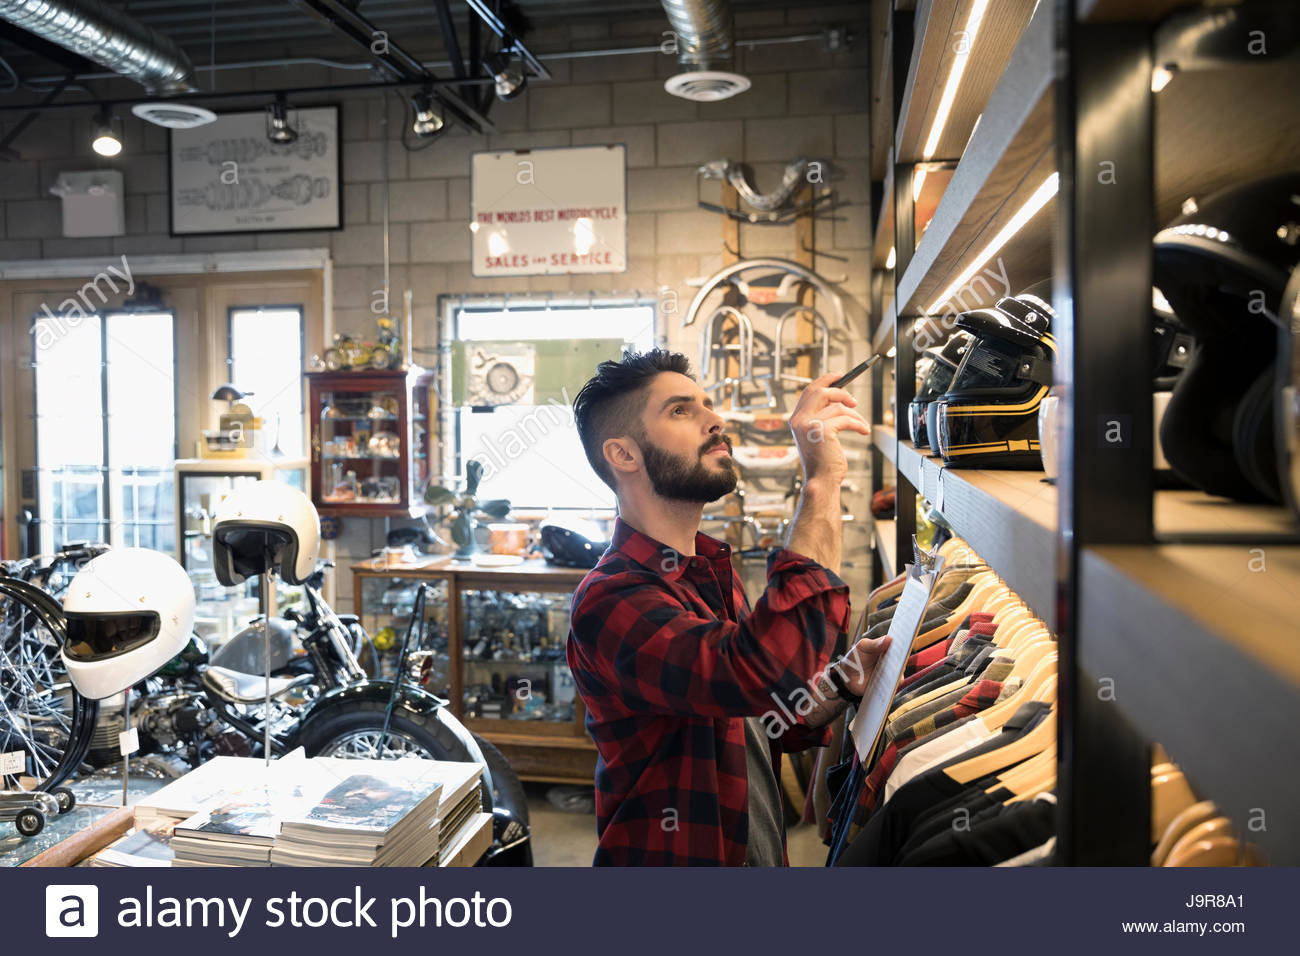 Motorcycle shop owner with clipboard checking helmet inventory - Stock Image